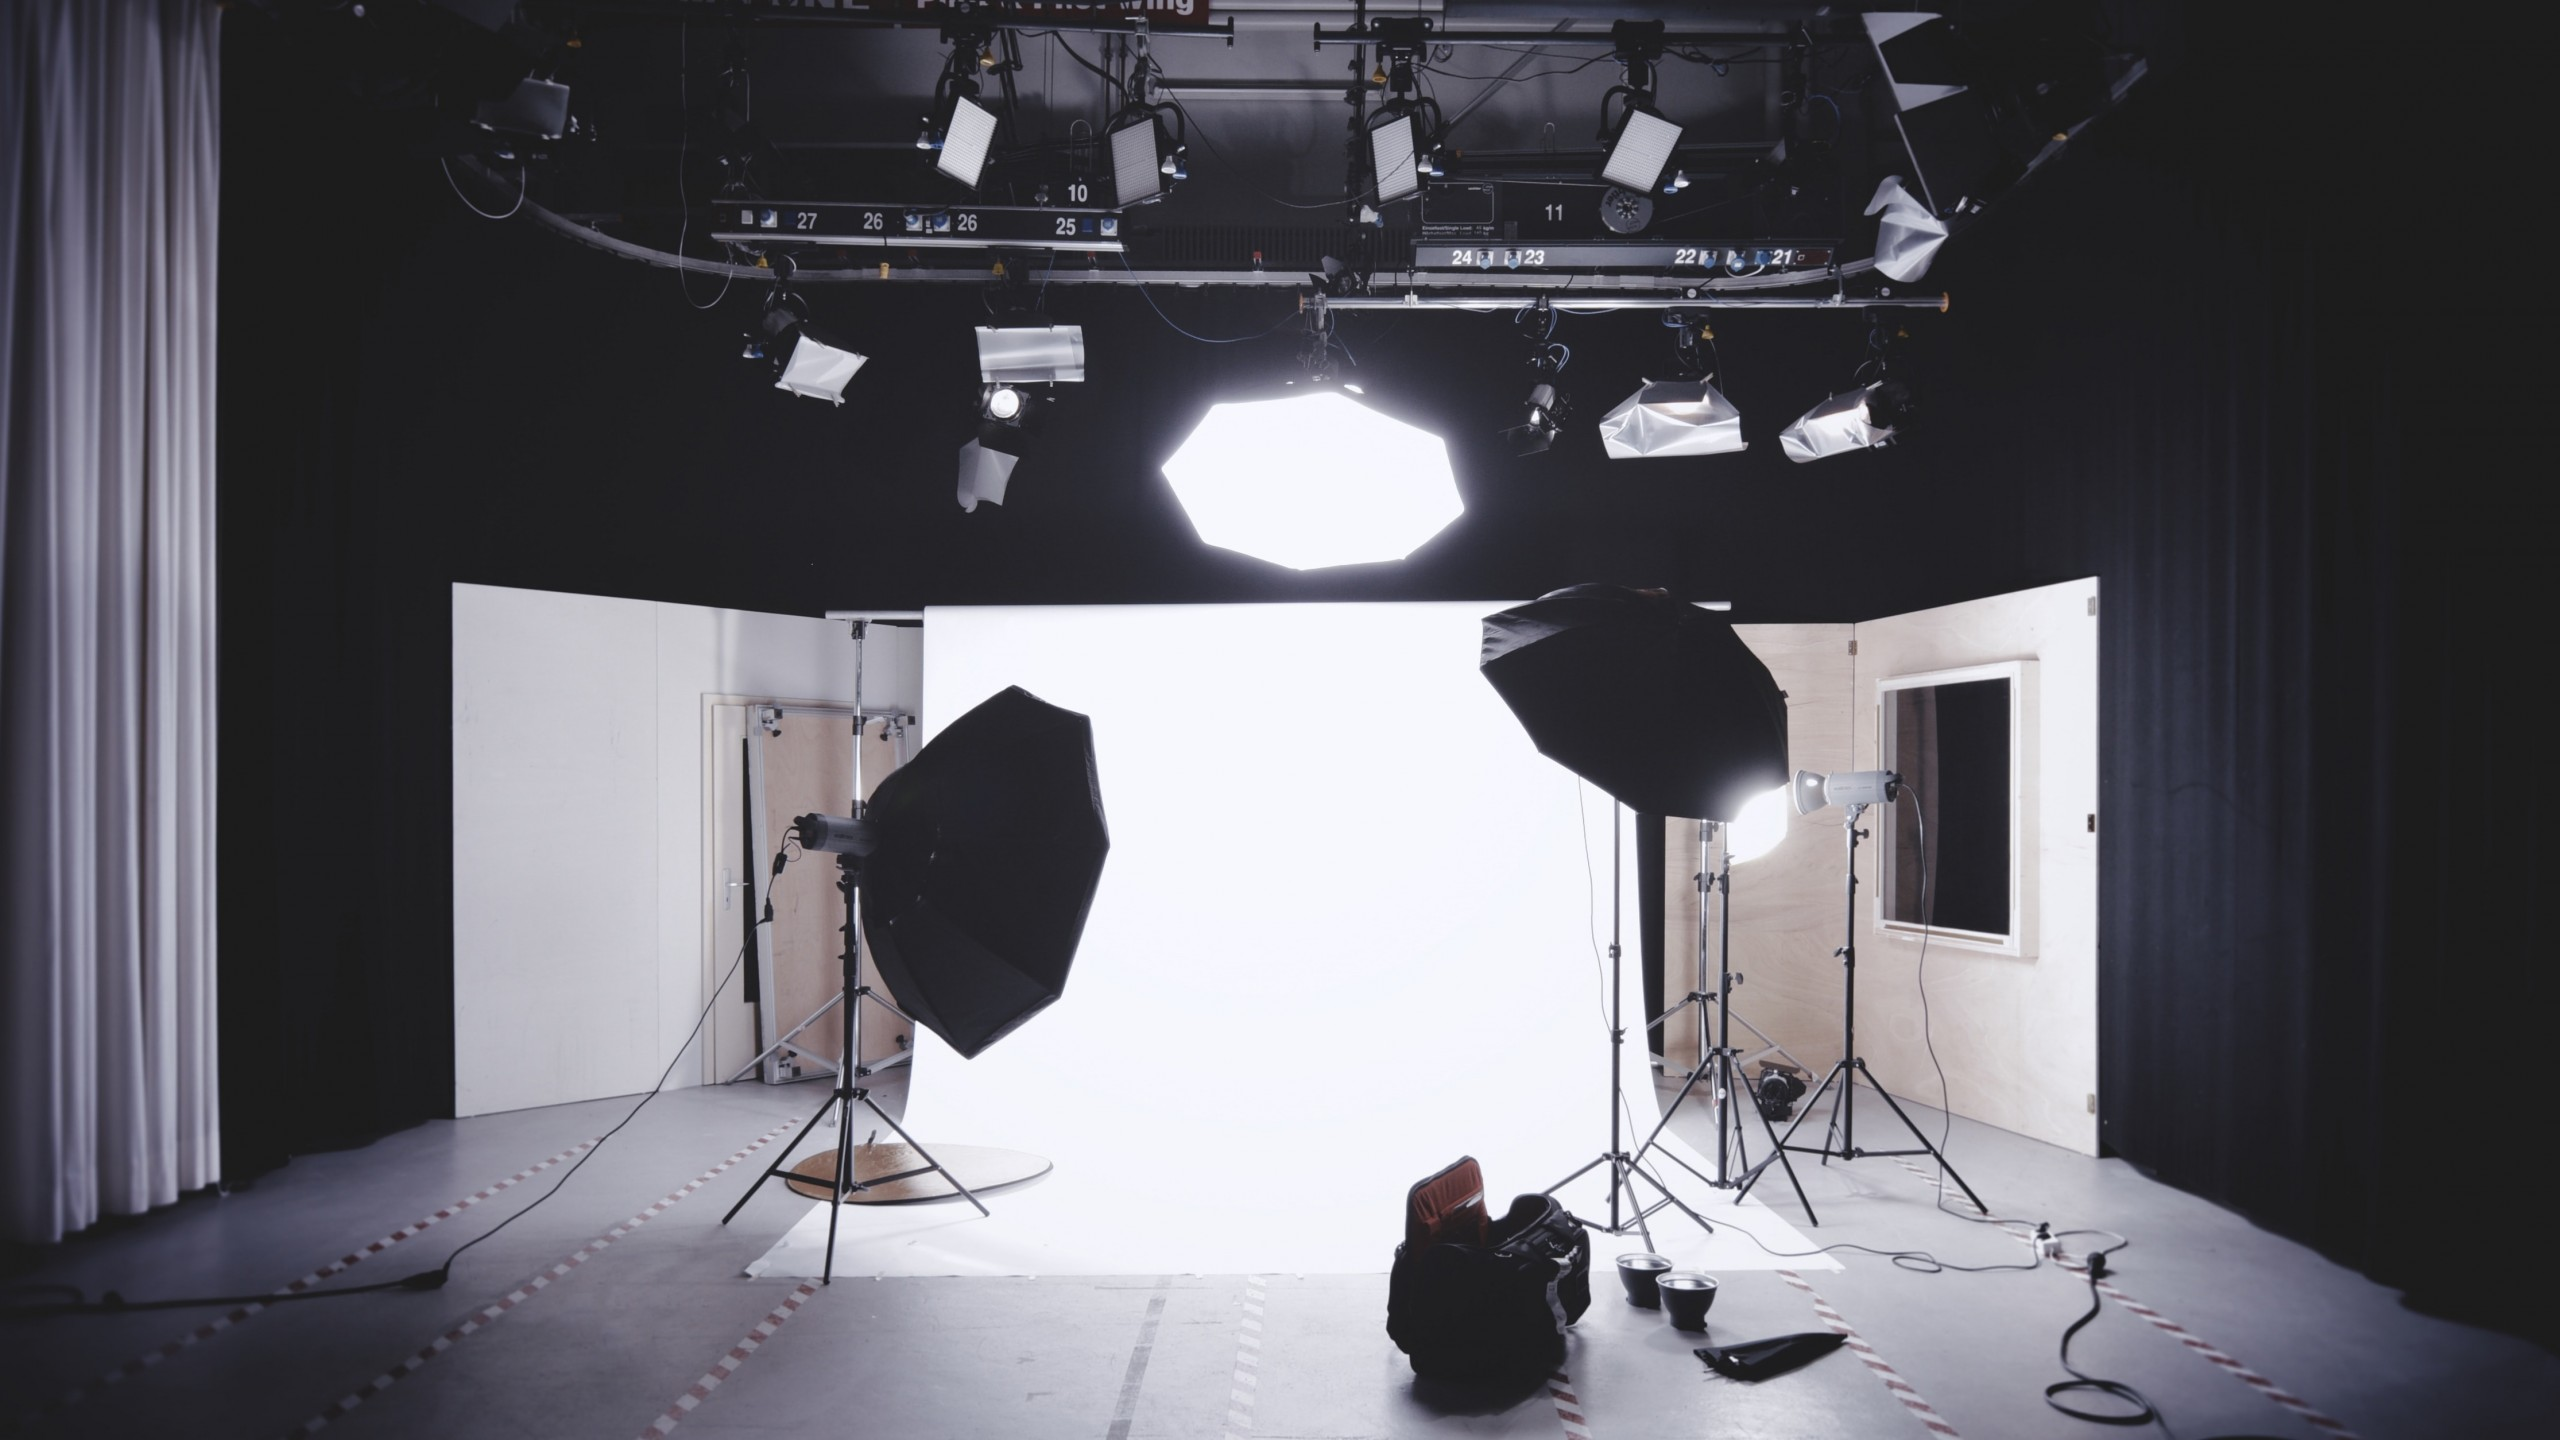 Interior photo of theatre space set up as a photo studio with black fabric walls and lighting rigging above.